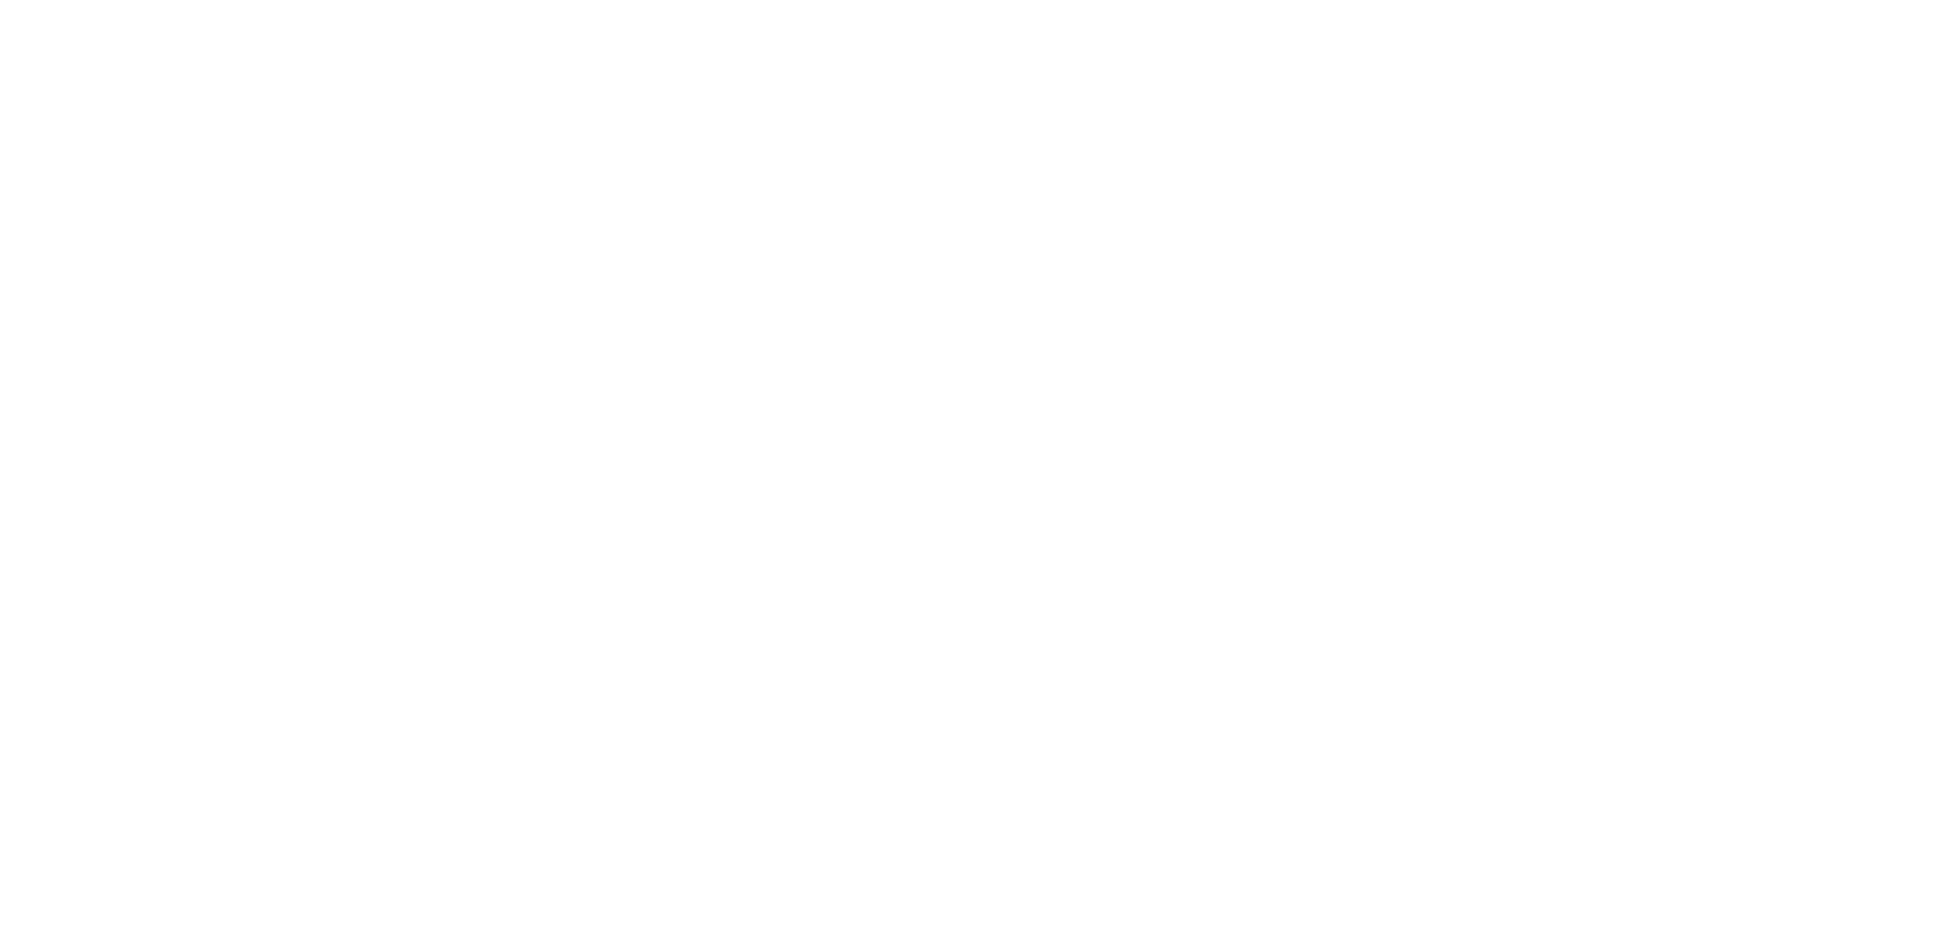 Windermere Homes and Estates